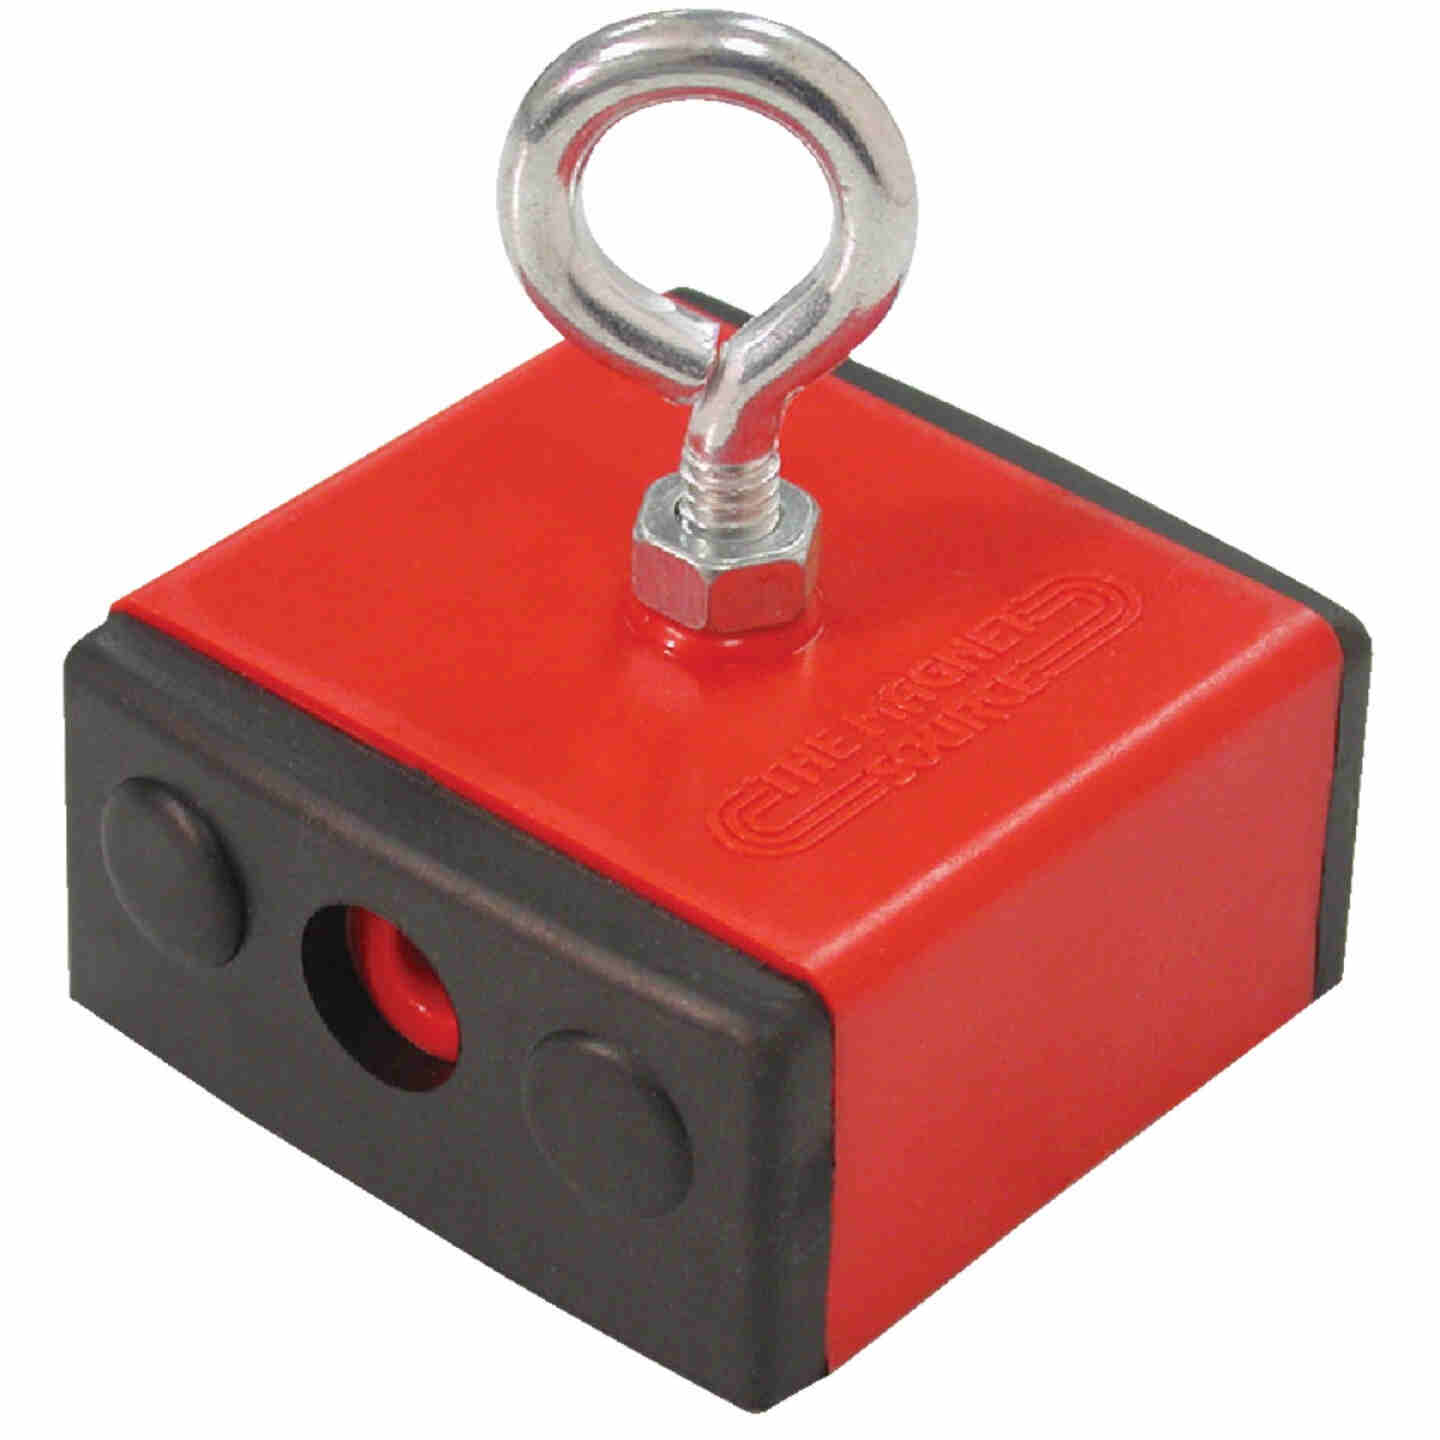 Master Magnetics 100 Lb. Holding, Retrieving and Lifting Magnet Image 1